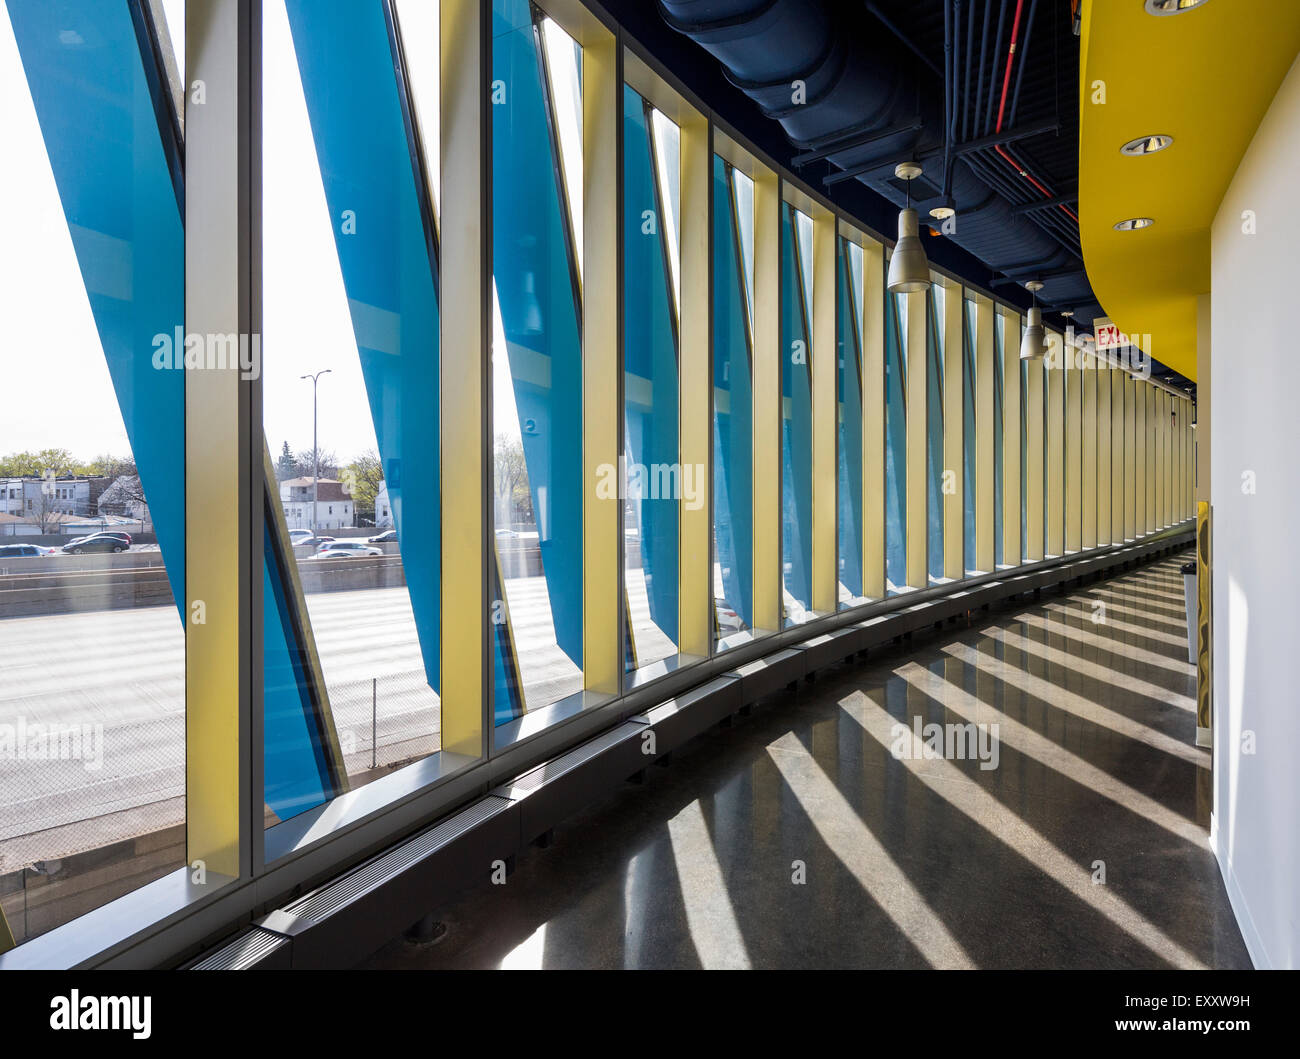 corridor, El Centro urban campus,  Northeastern Illinois University, Avondale, Chicago, Illinois, USA - Stock Image